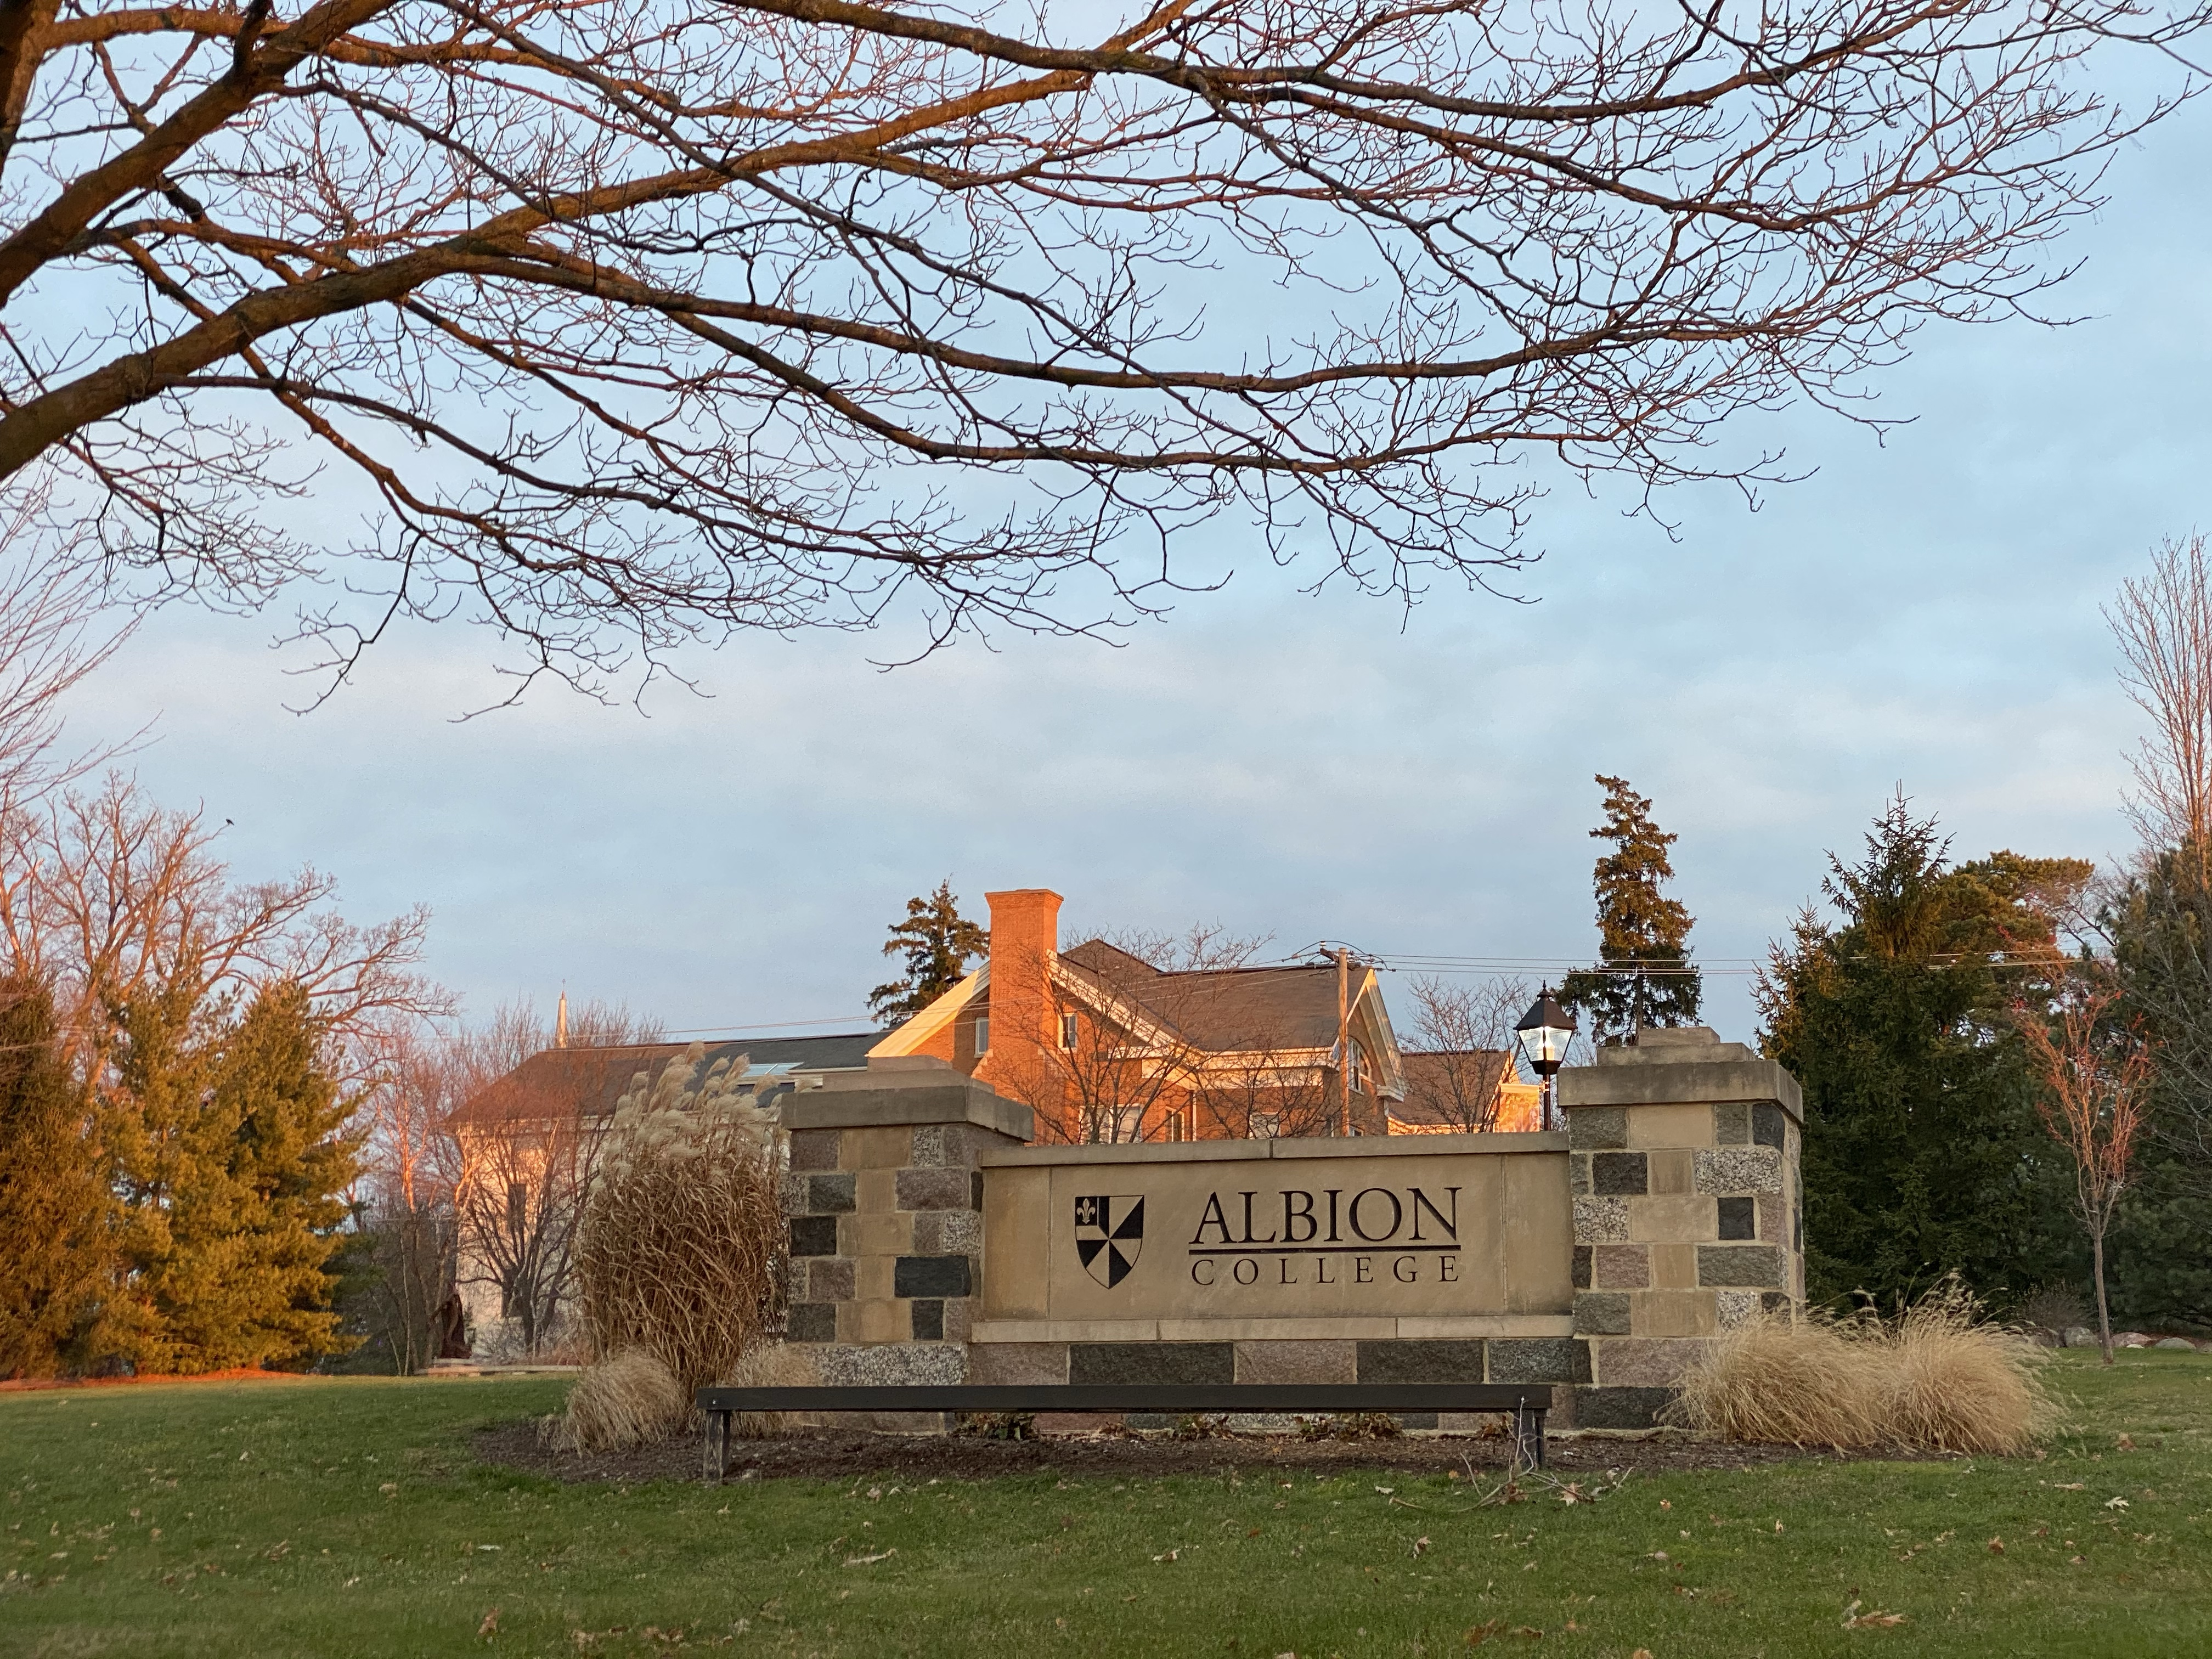 Albion College Campus Sign Sunrise